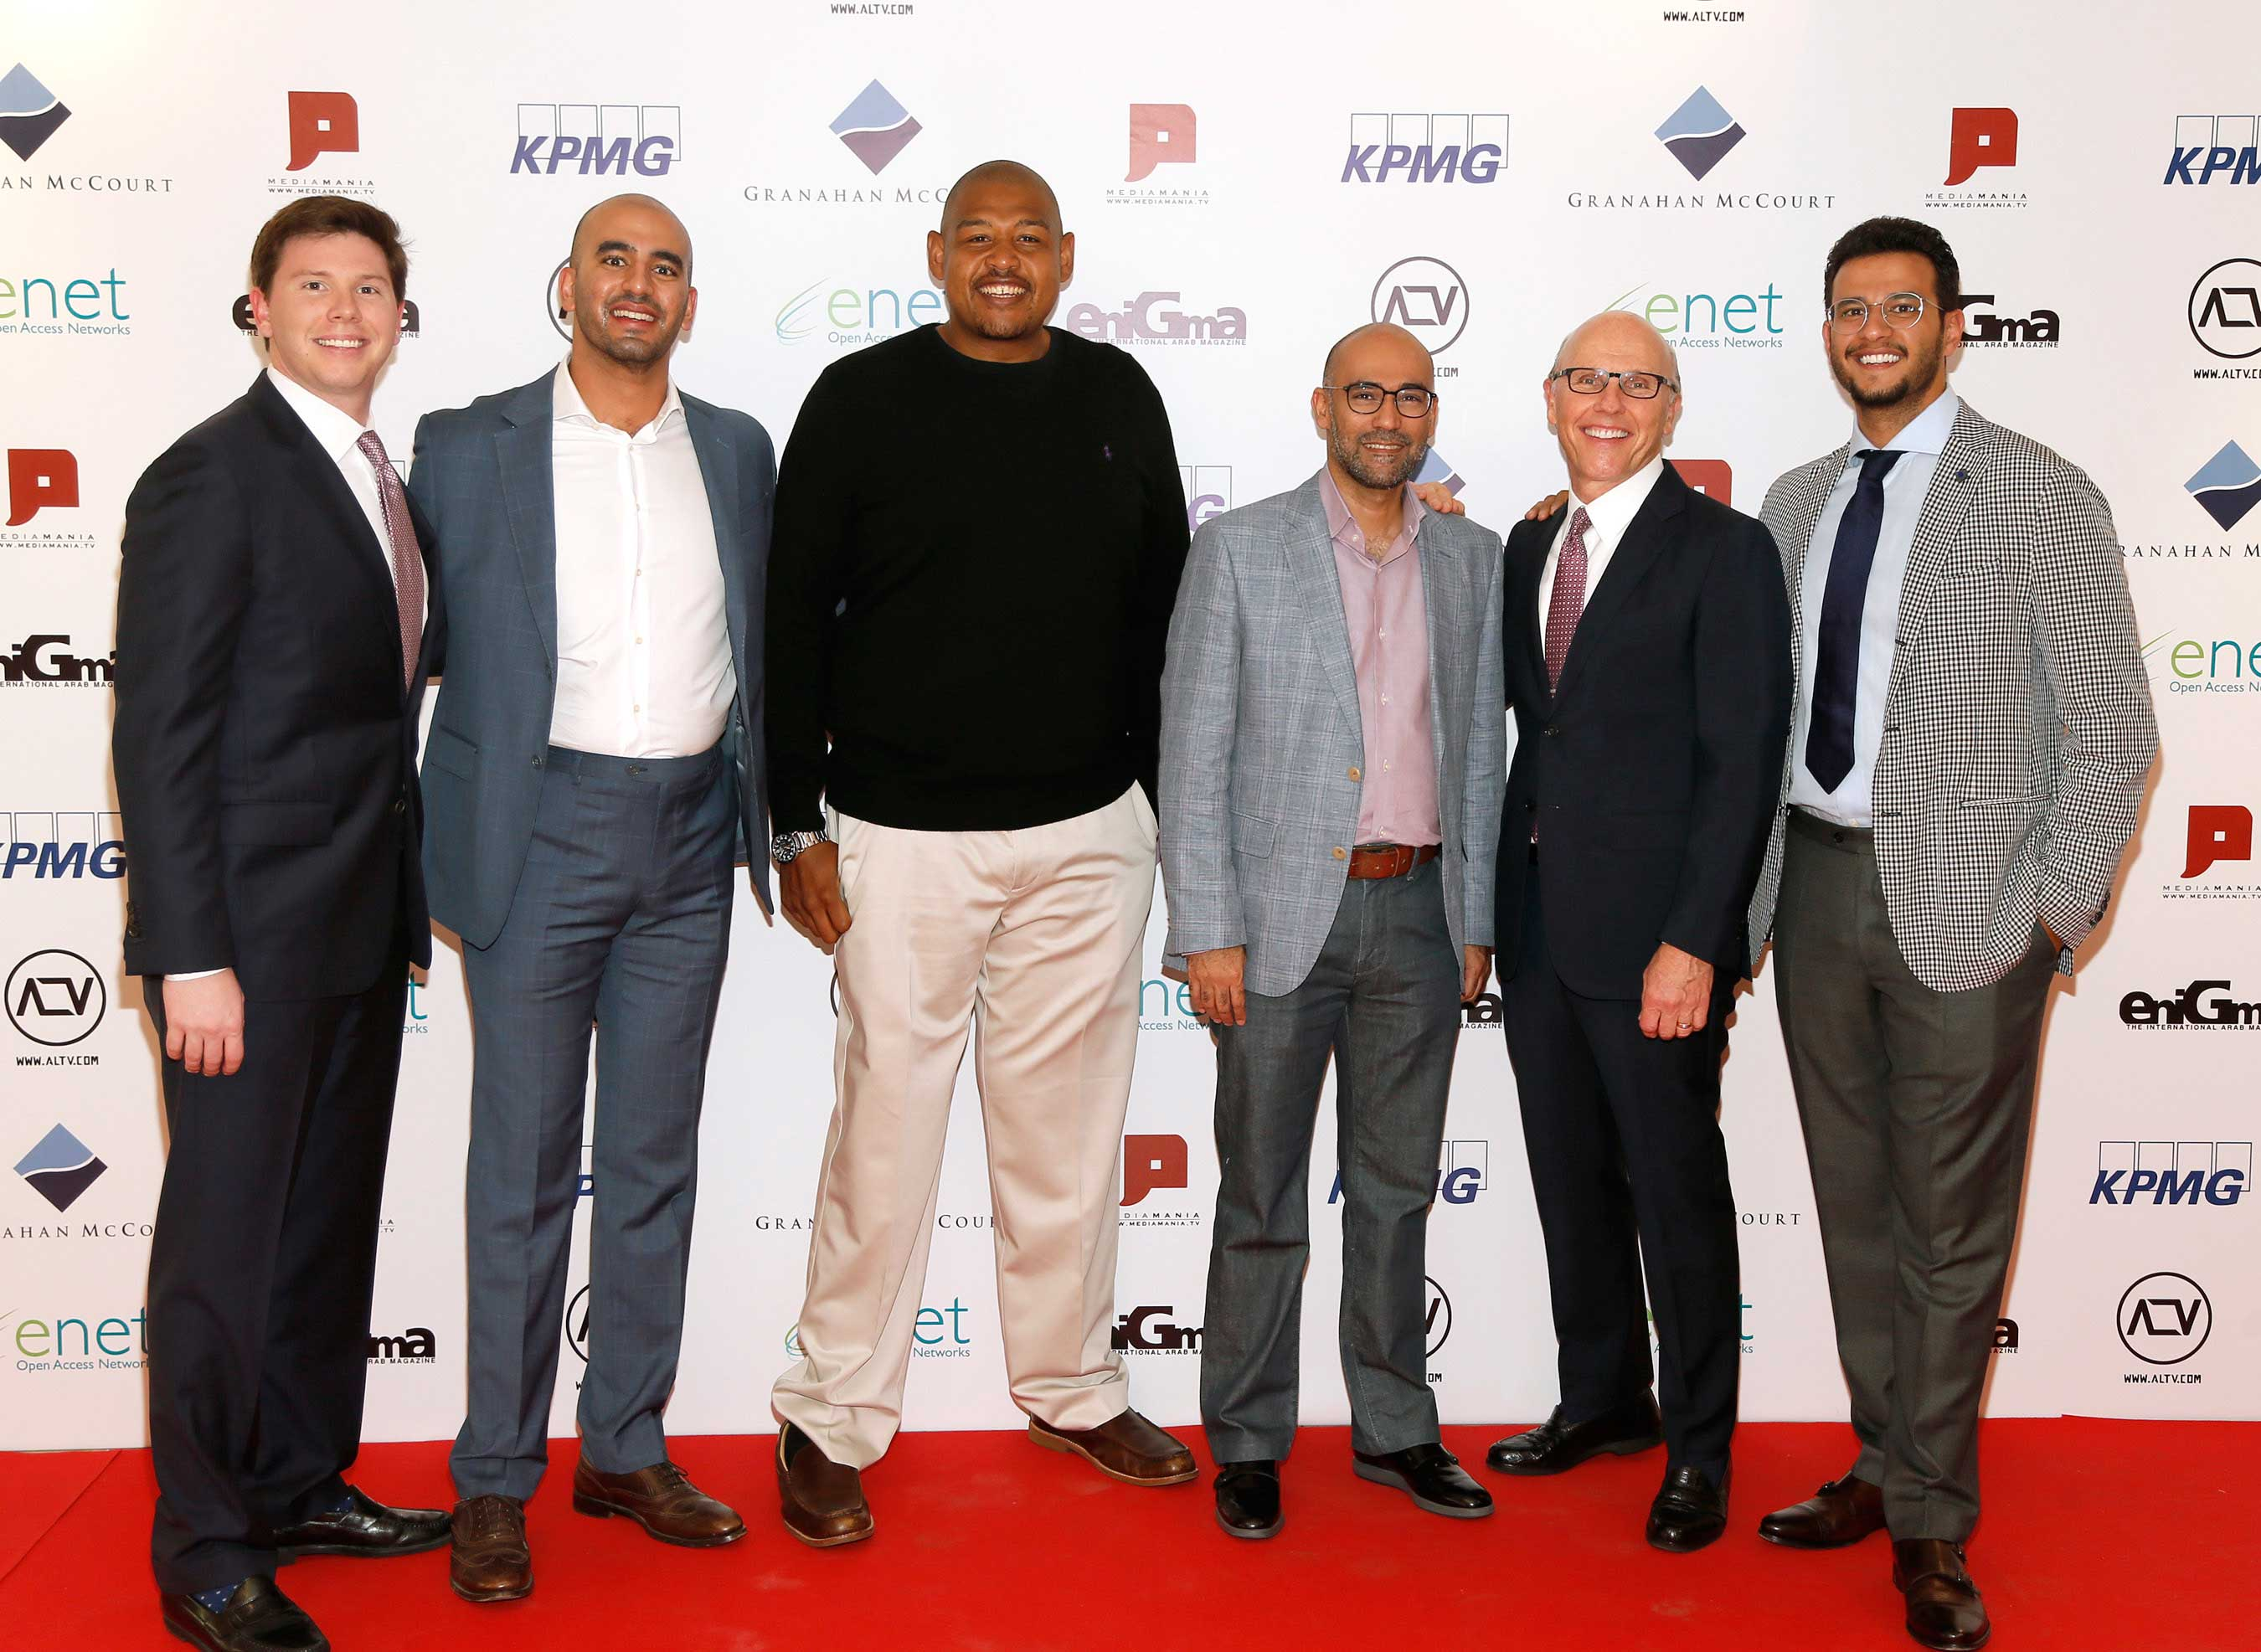 dave-mccourt-omar-talib-omar-miller-ali-buali-david-mccourt-and-prince-bandar-al-saud-at-the-launch-of-altv